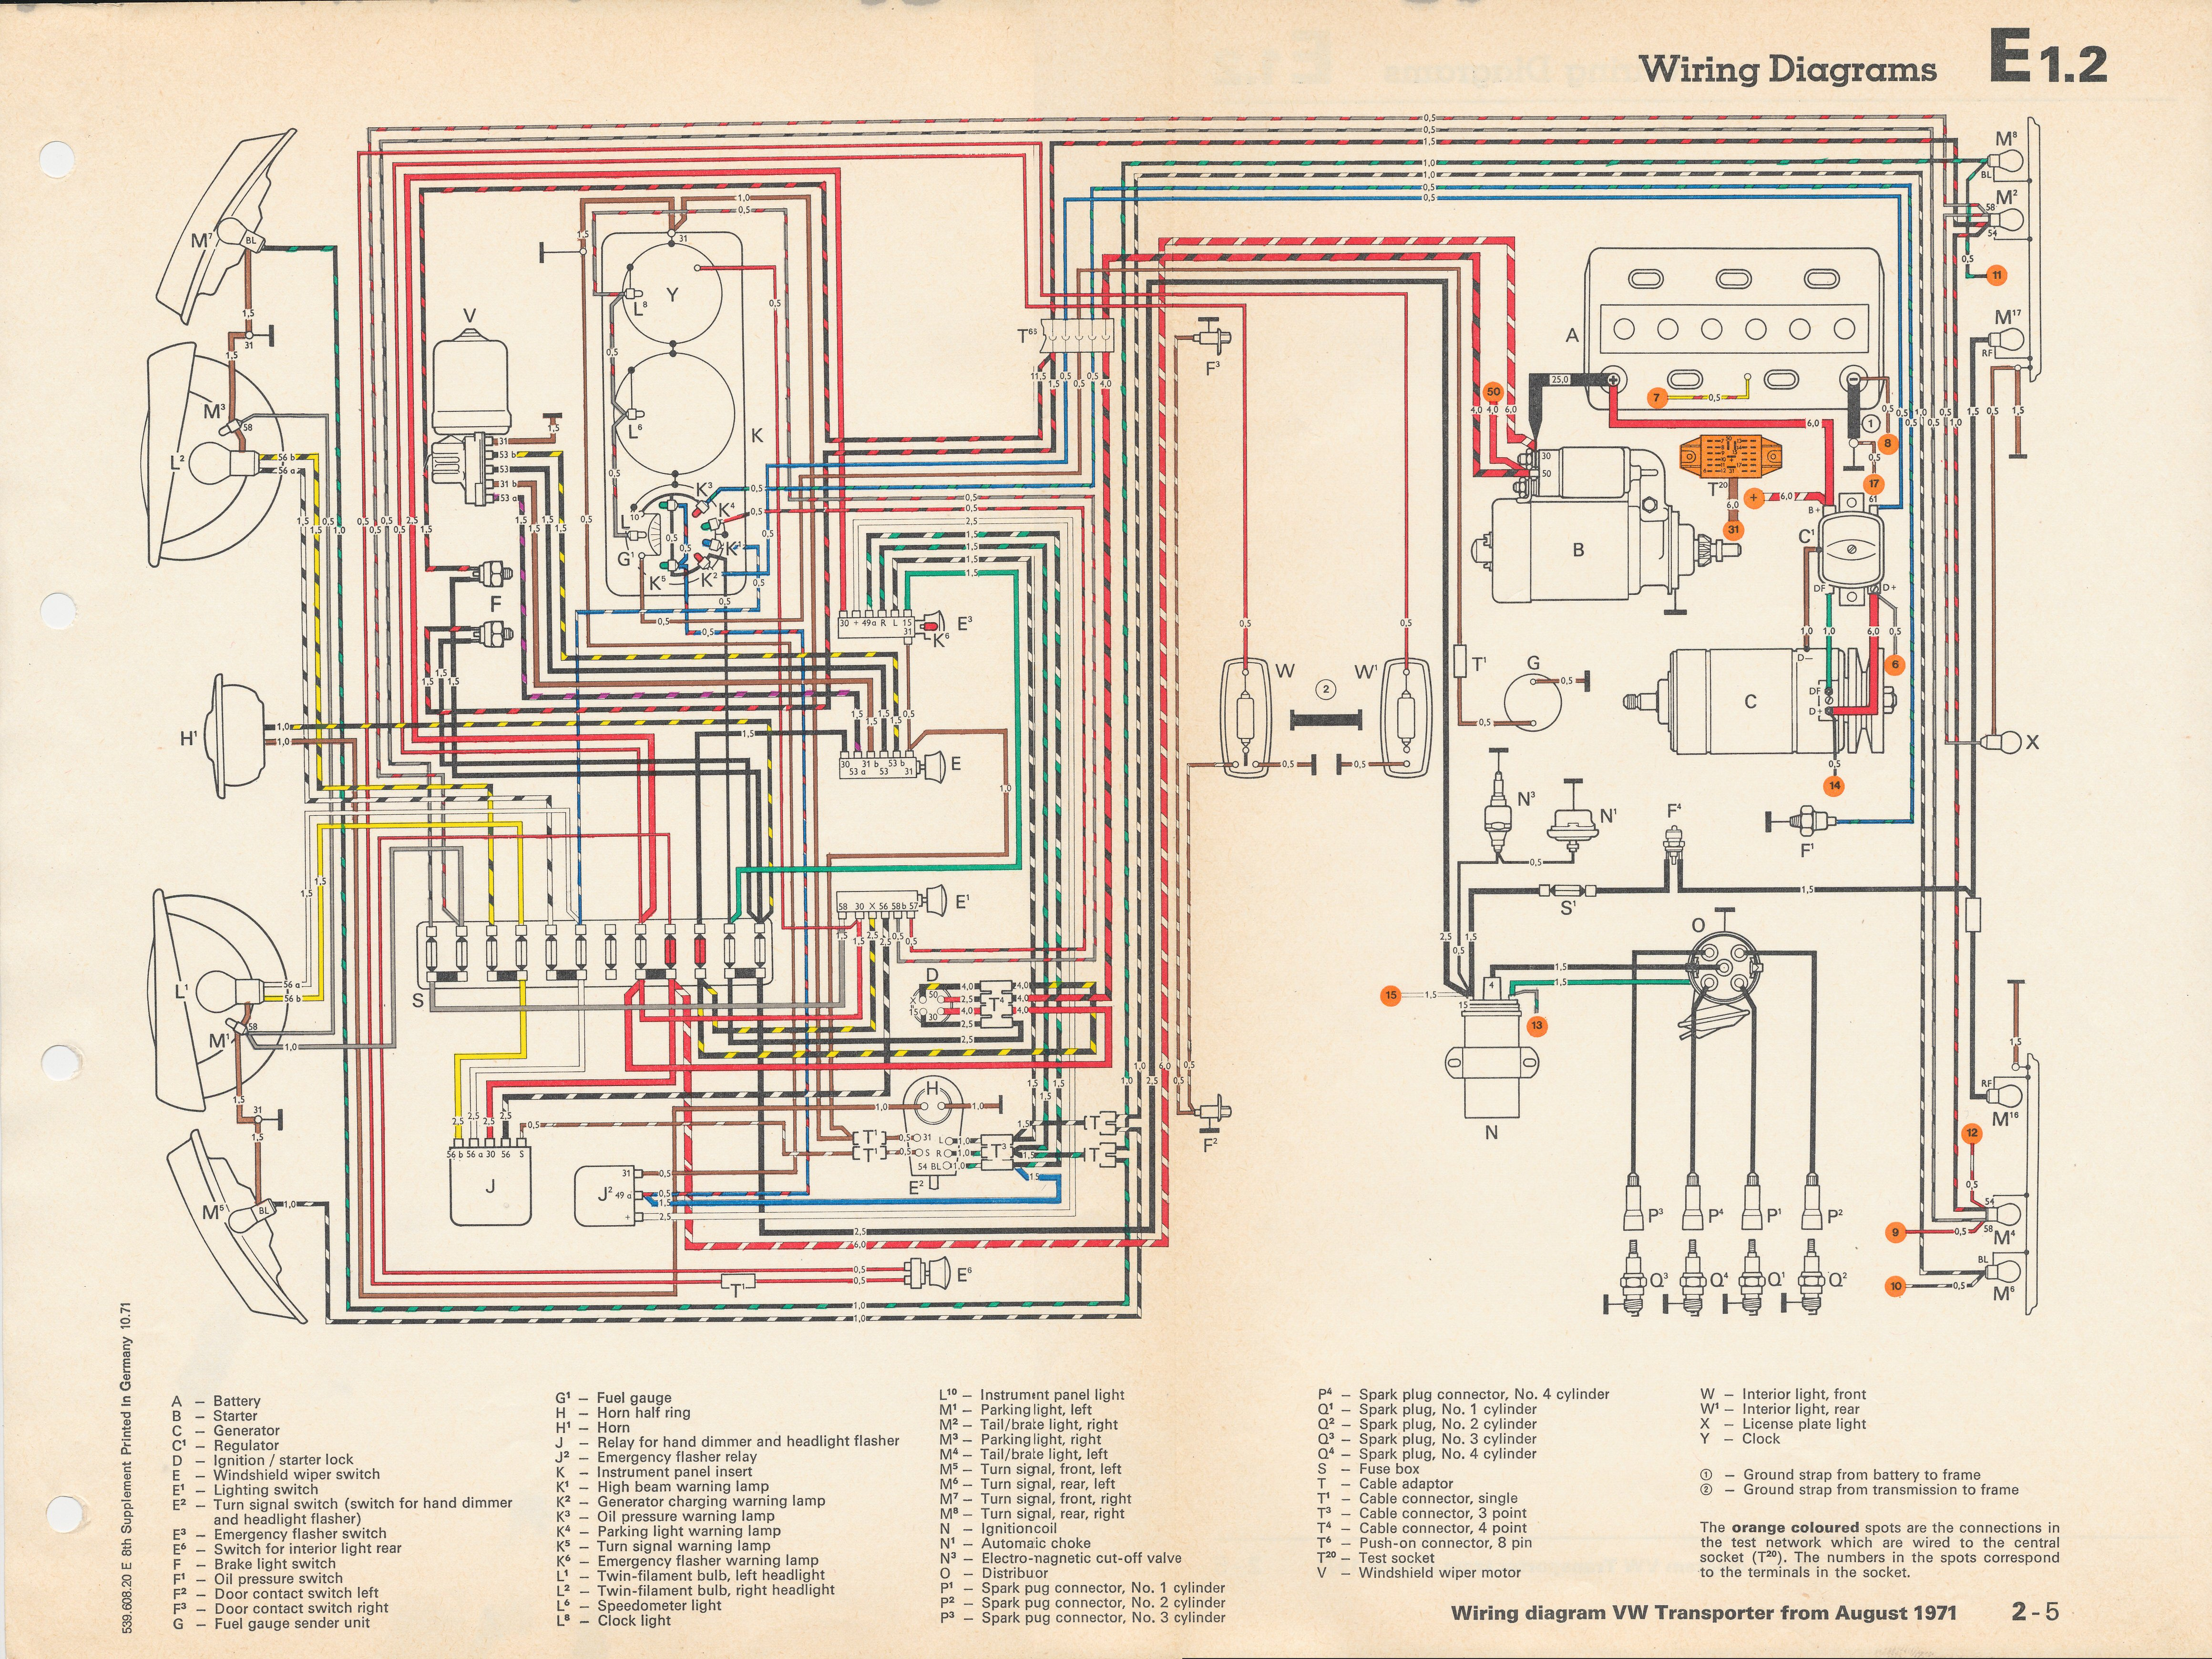 1969 vw bus wiring diagram wiring diagram for light switch u2022 1967 gto tail light wiring diagram 69 charger transmission wiring diagram [ 4640 x 3480 Pixel ]